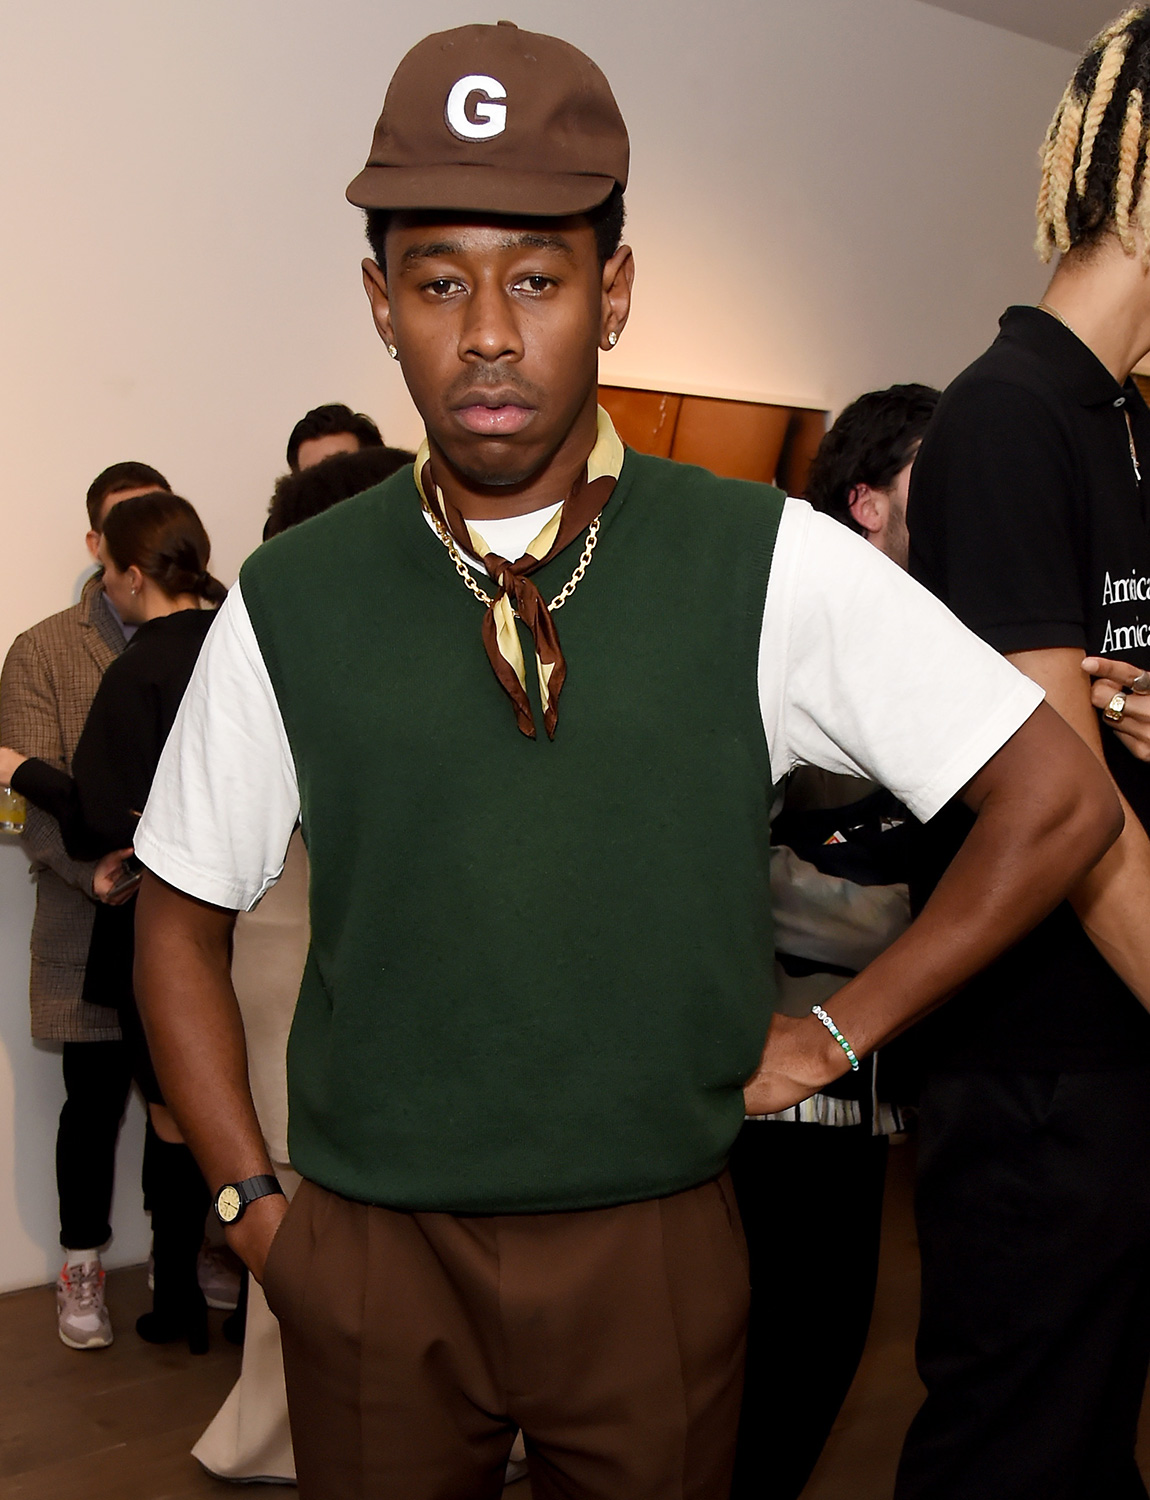 Tyler, The Creator attends the Renell Medrano and WePresent opening preview of PAMPARA Photographic exhibition on February 17, 2020 in London, England